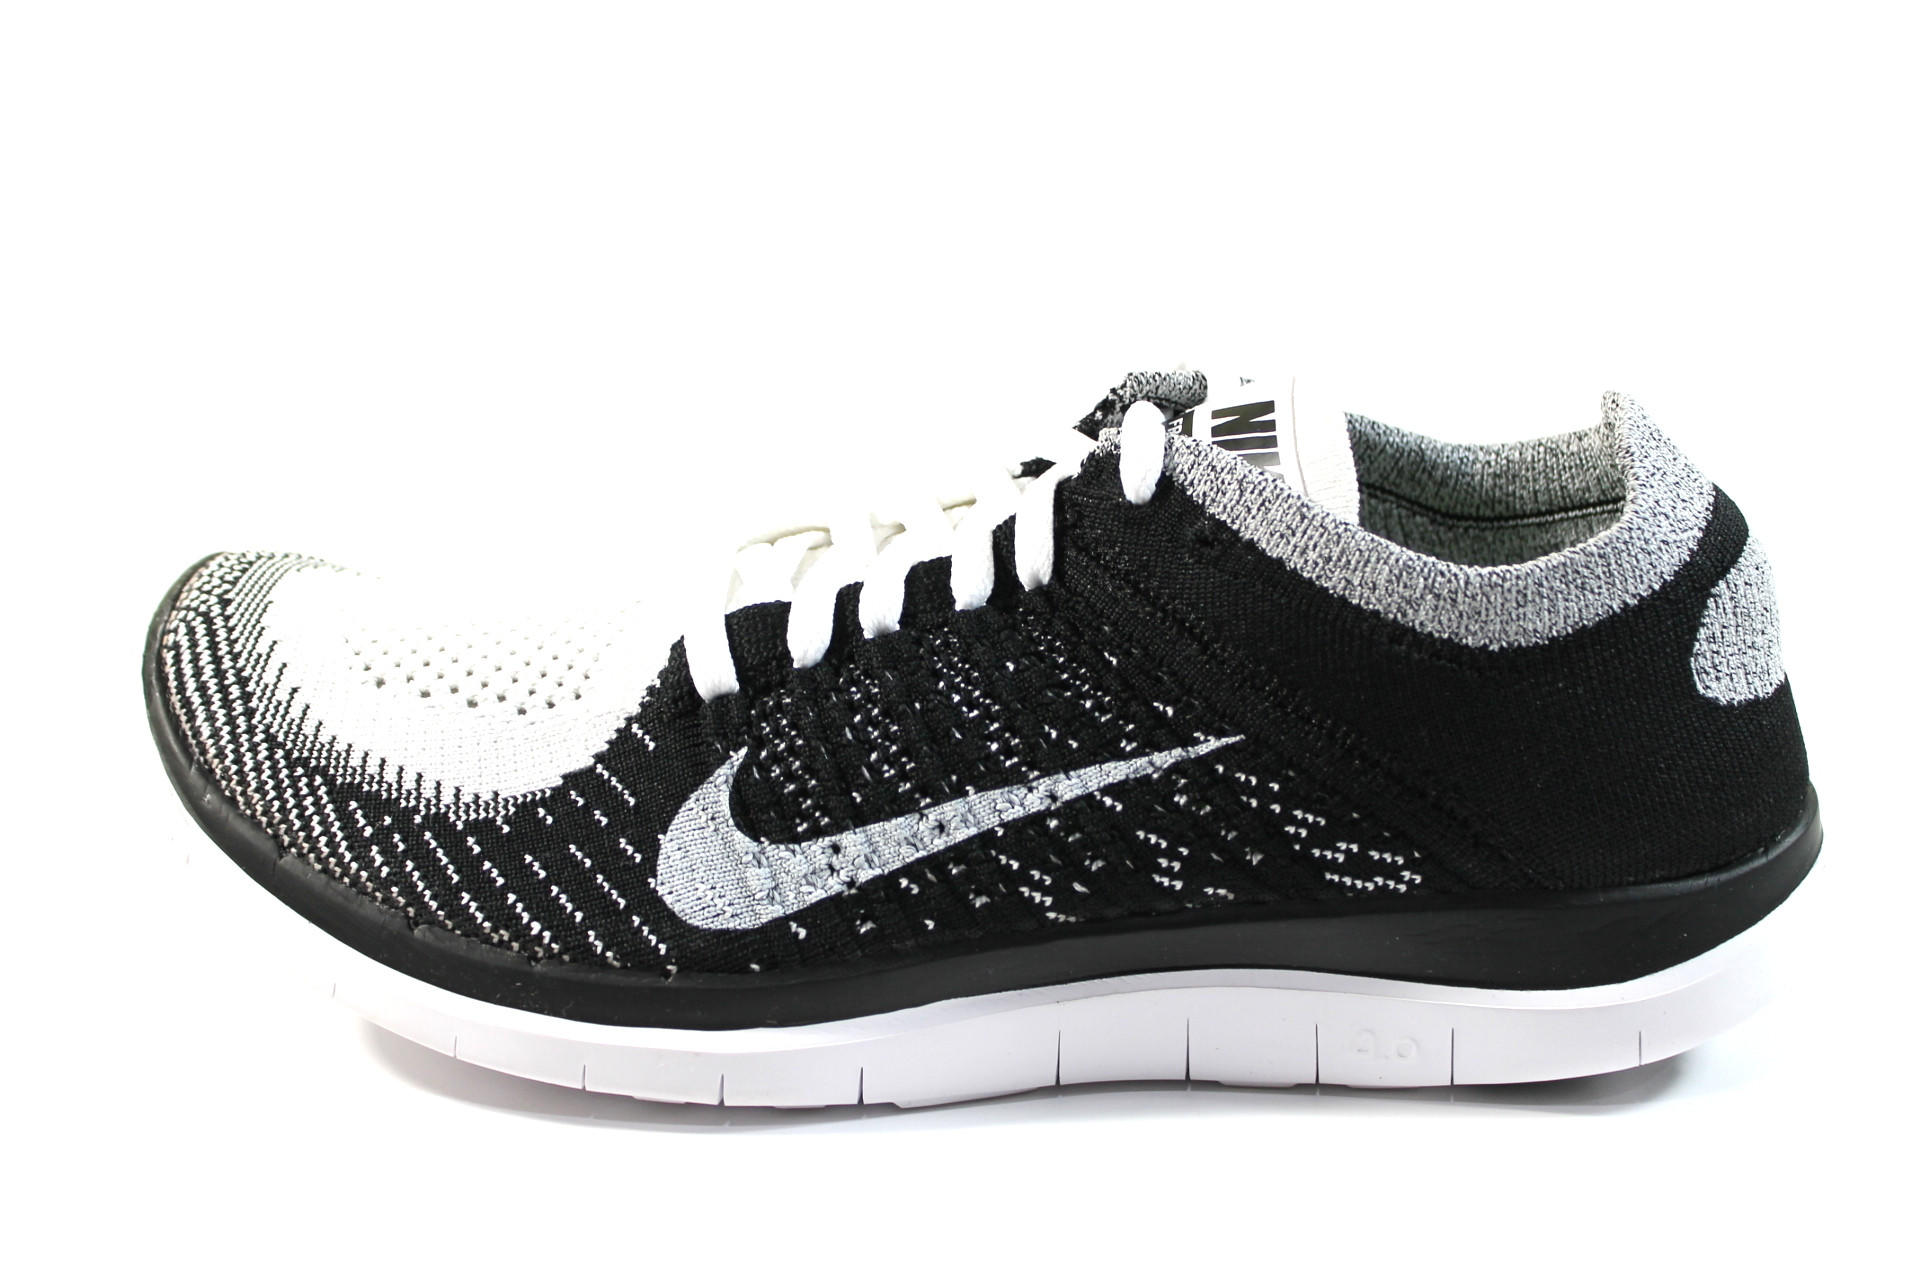 Nike Men s Free Flyknit 4.0 White Black Running Shoes 631053 100 fa94fd1f1c01